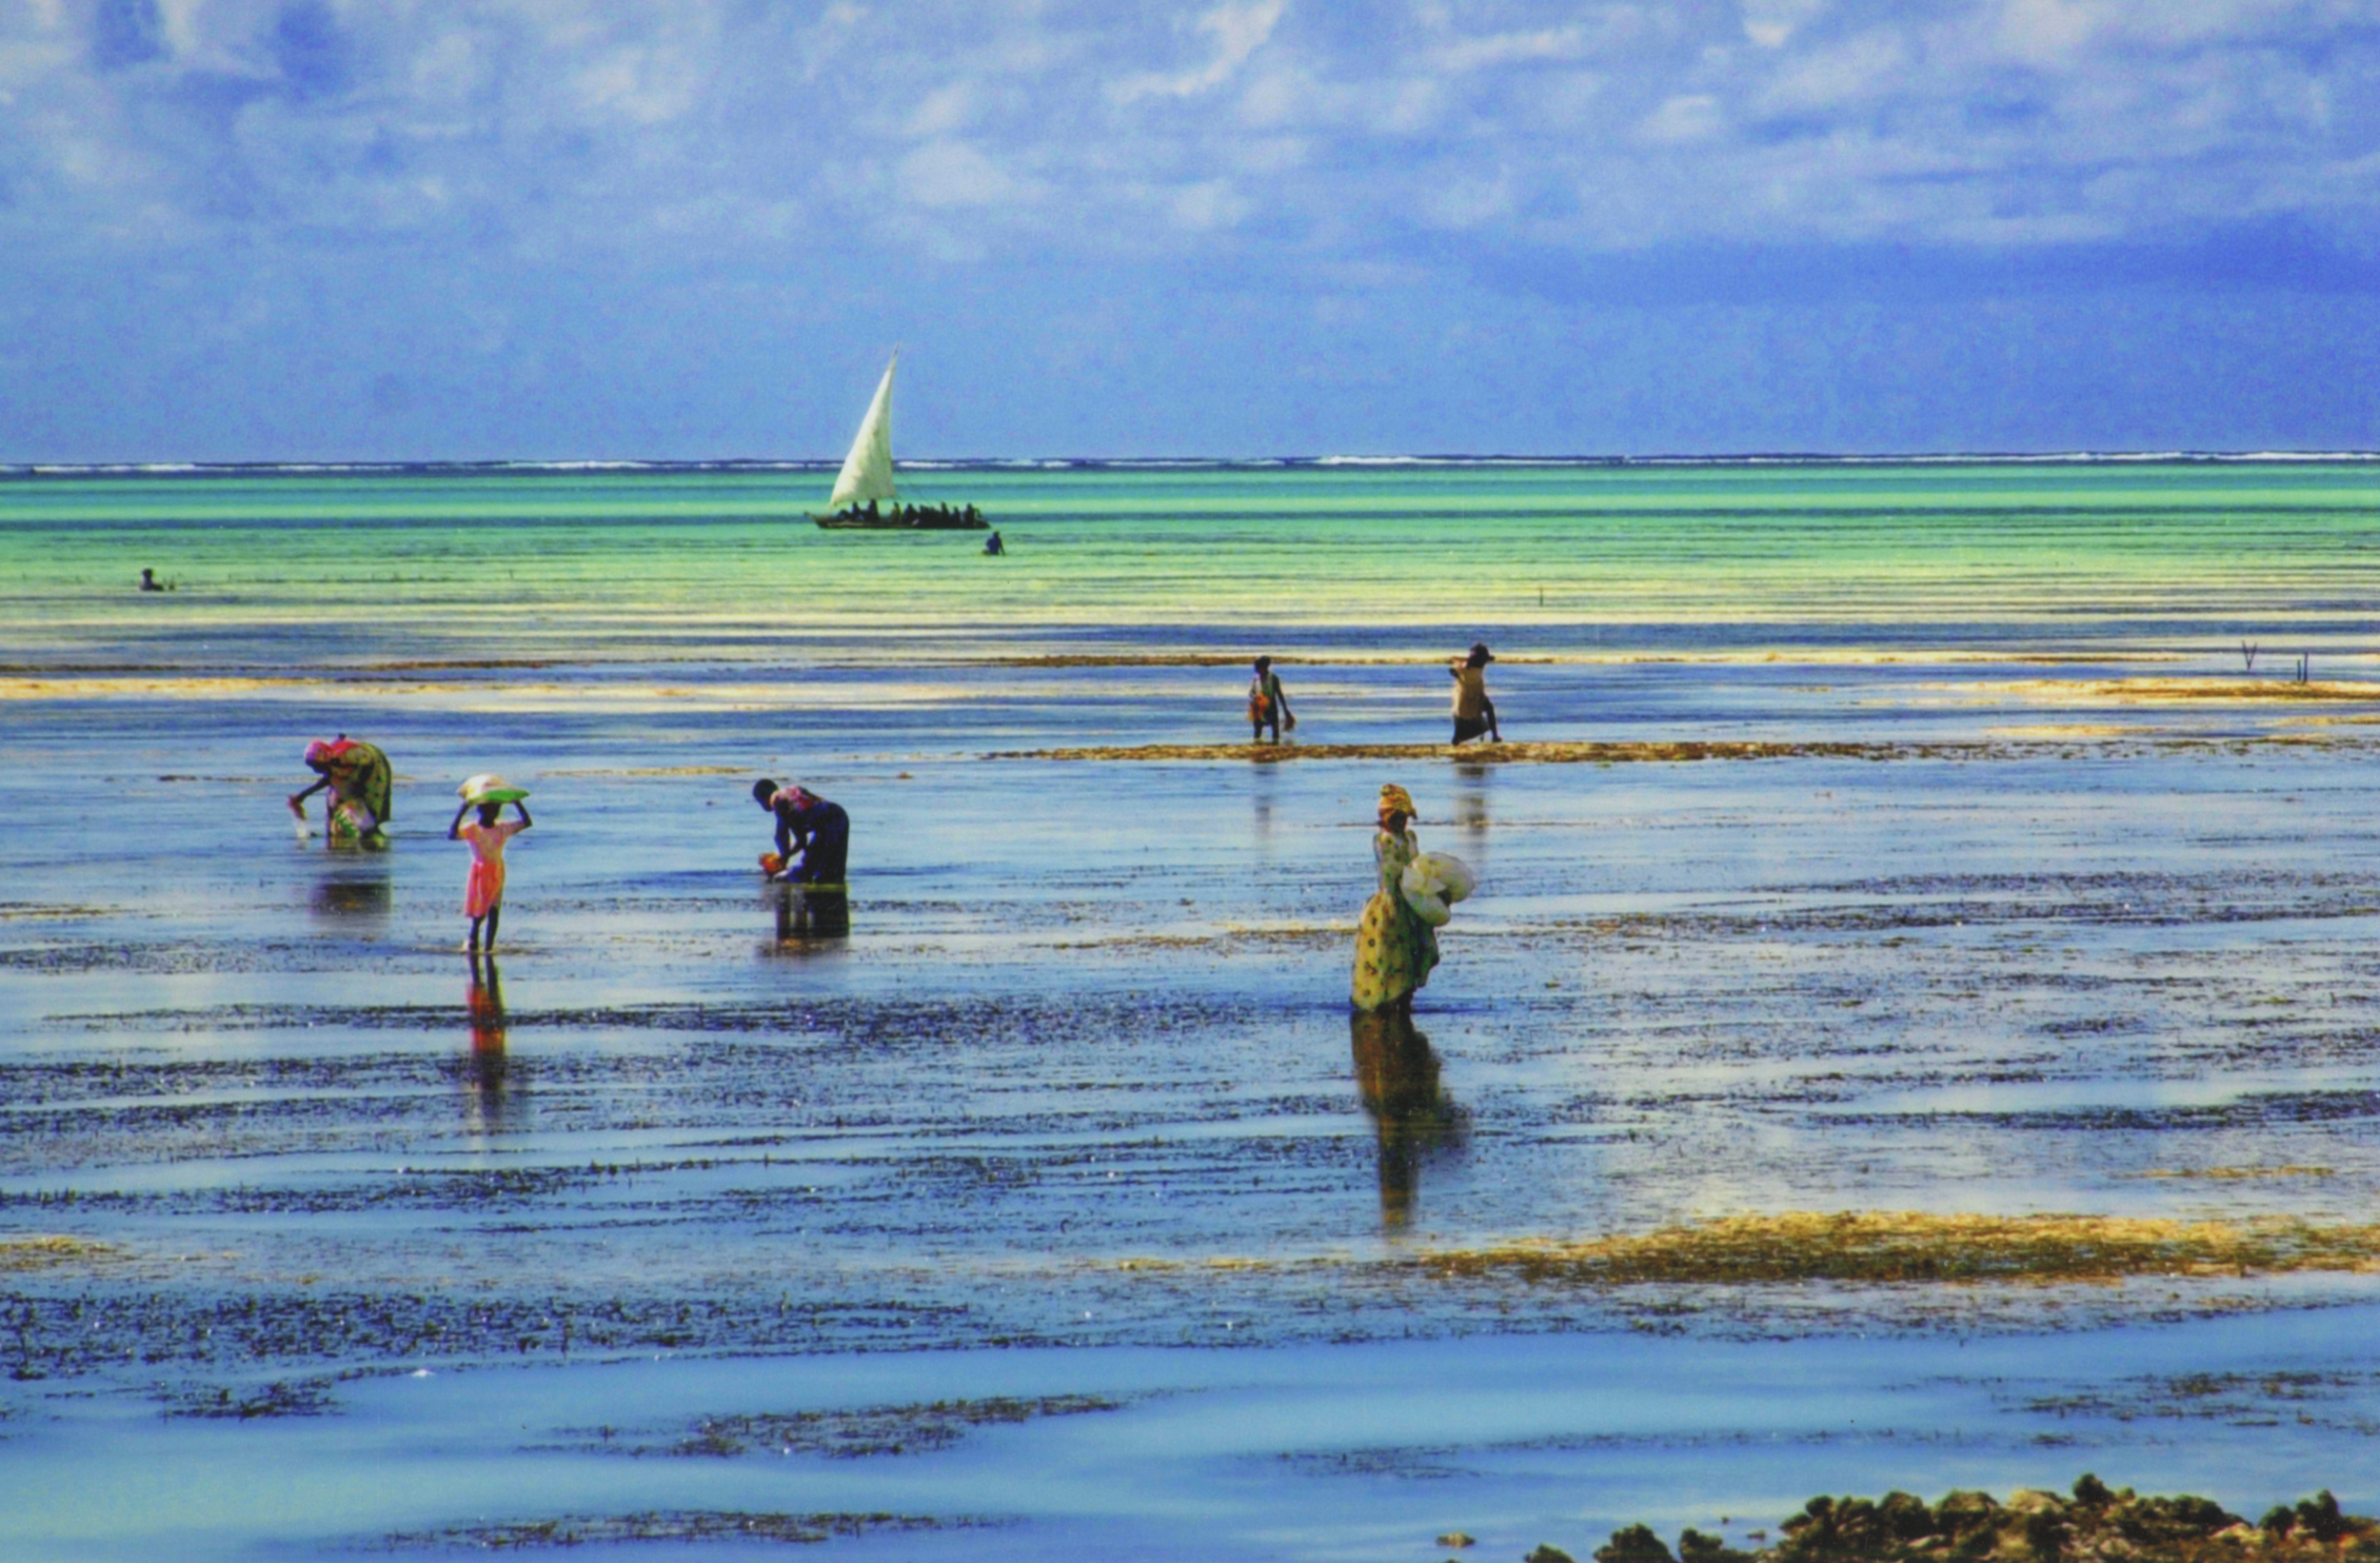 On Zanzibar island, NOMAD CHIC, sailed on a local dhow to a sea-weed farm organized by a woman's cooperative.